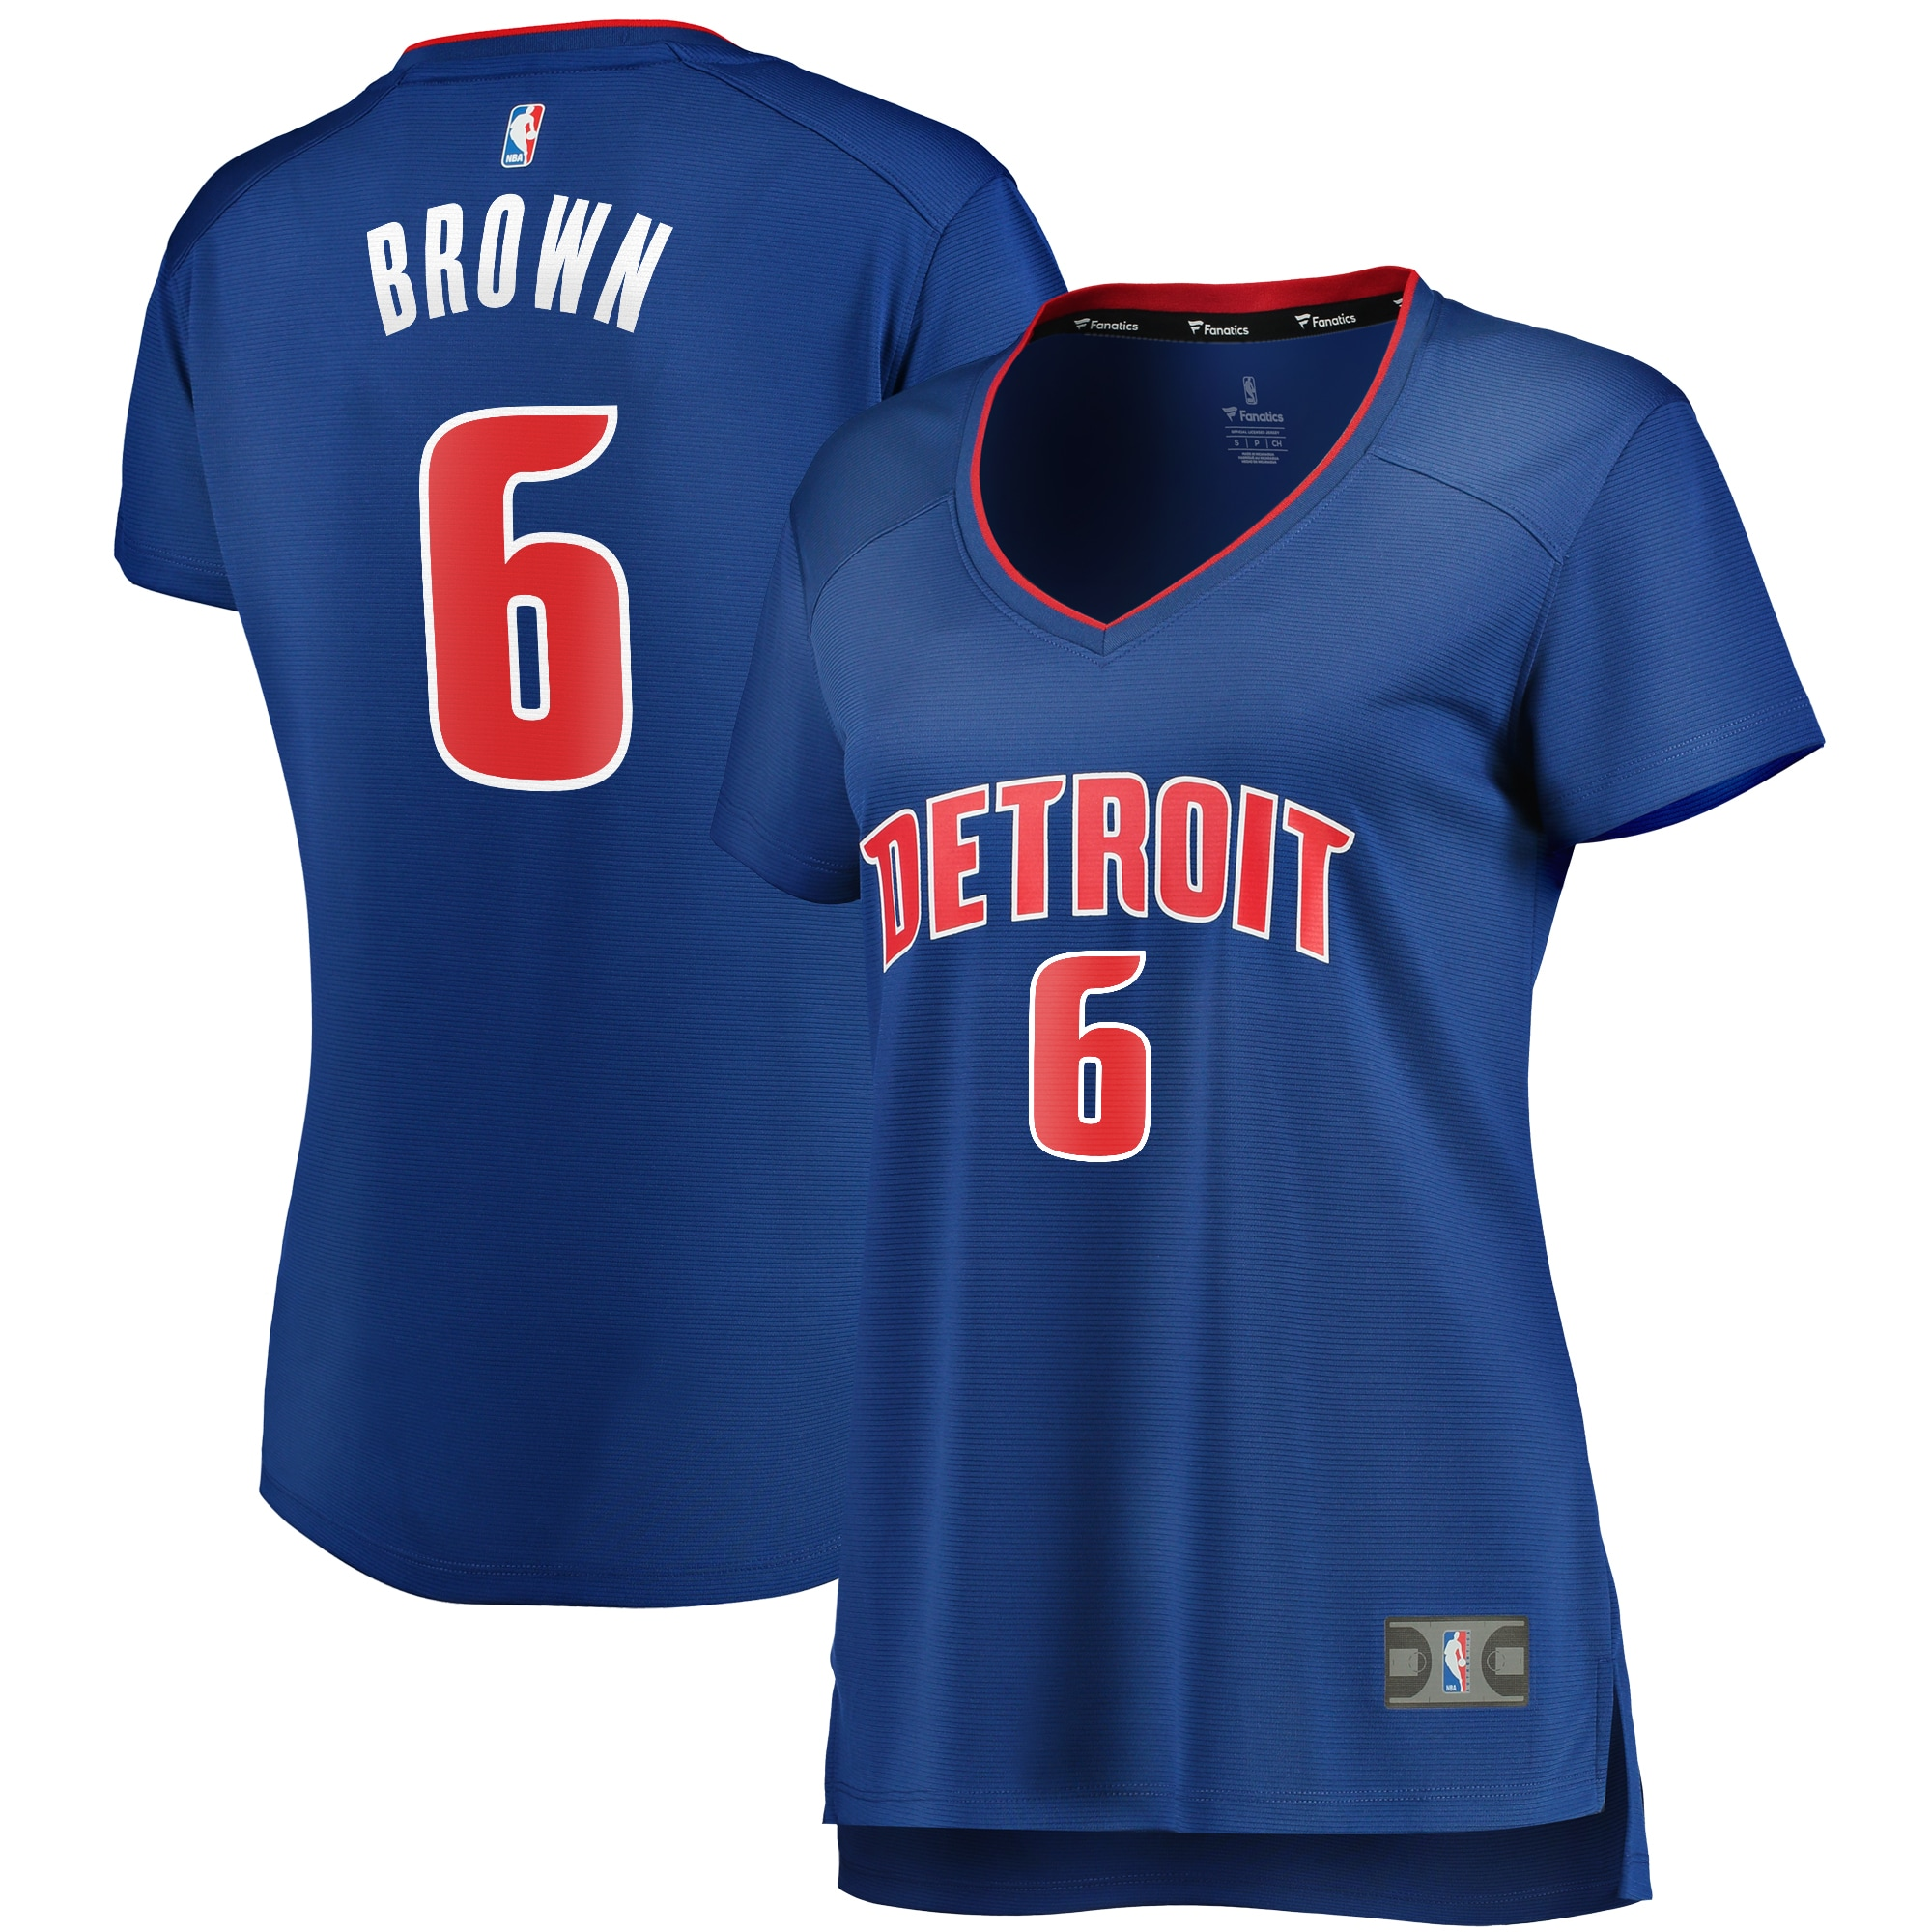 Bruce Brown Detroit Pistons Fanatics Branded Women's Fast Break Replica Player Jersey - Icon Edition - Blue